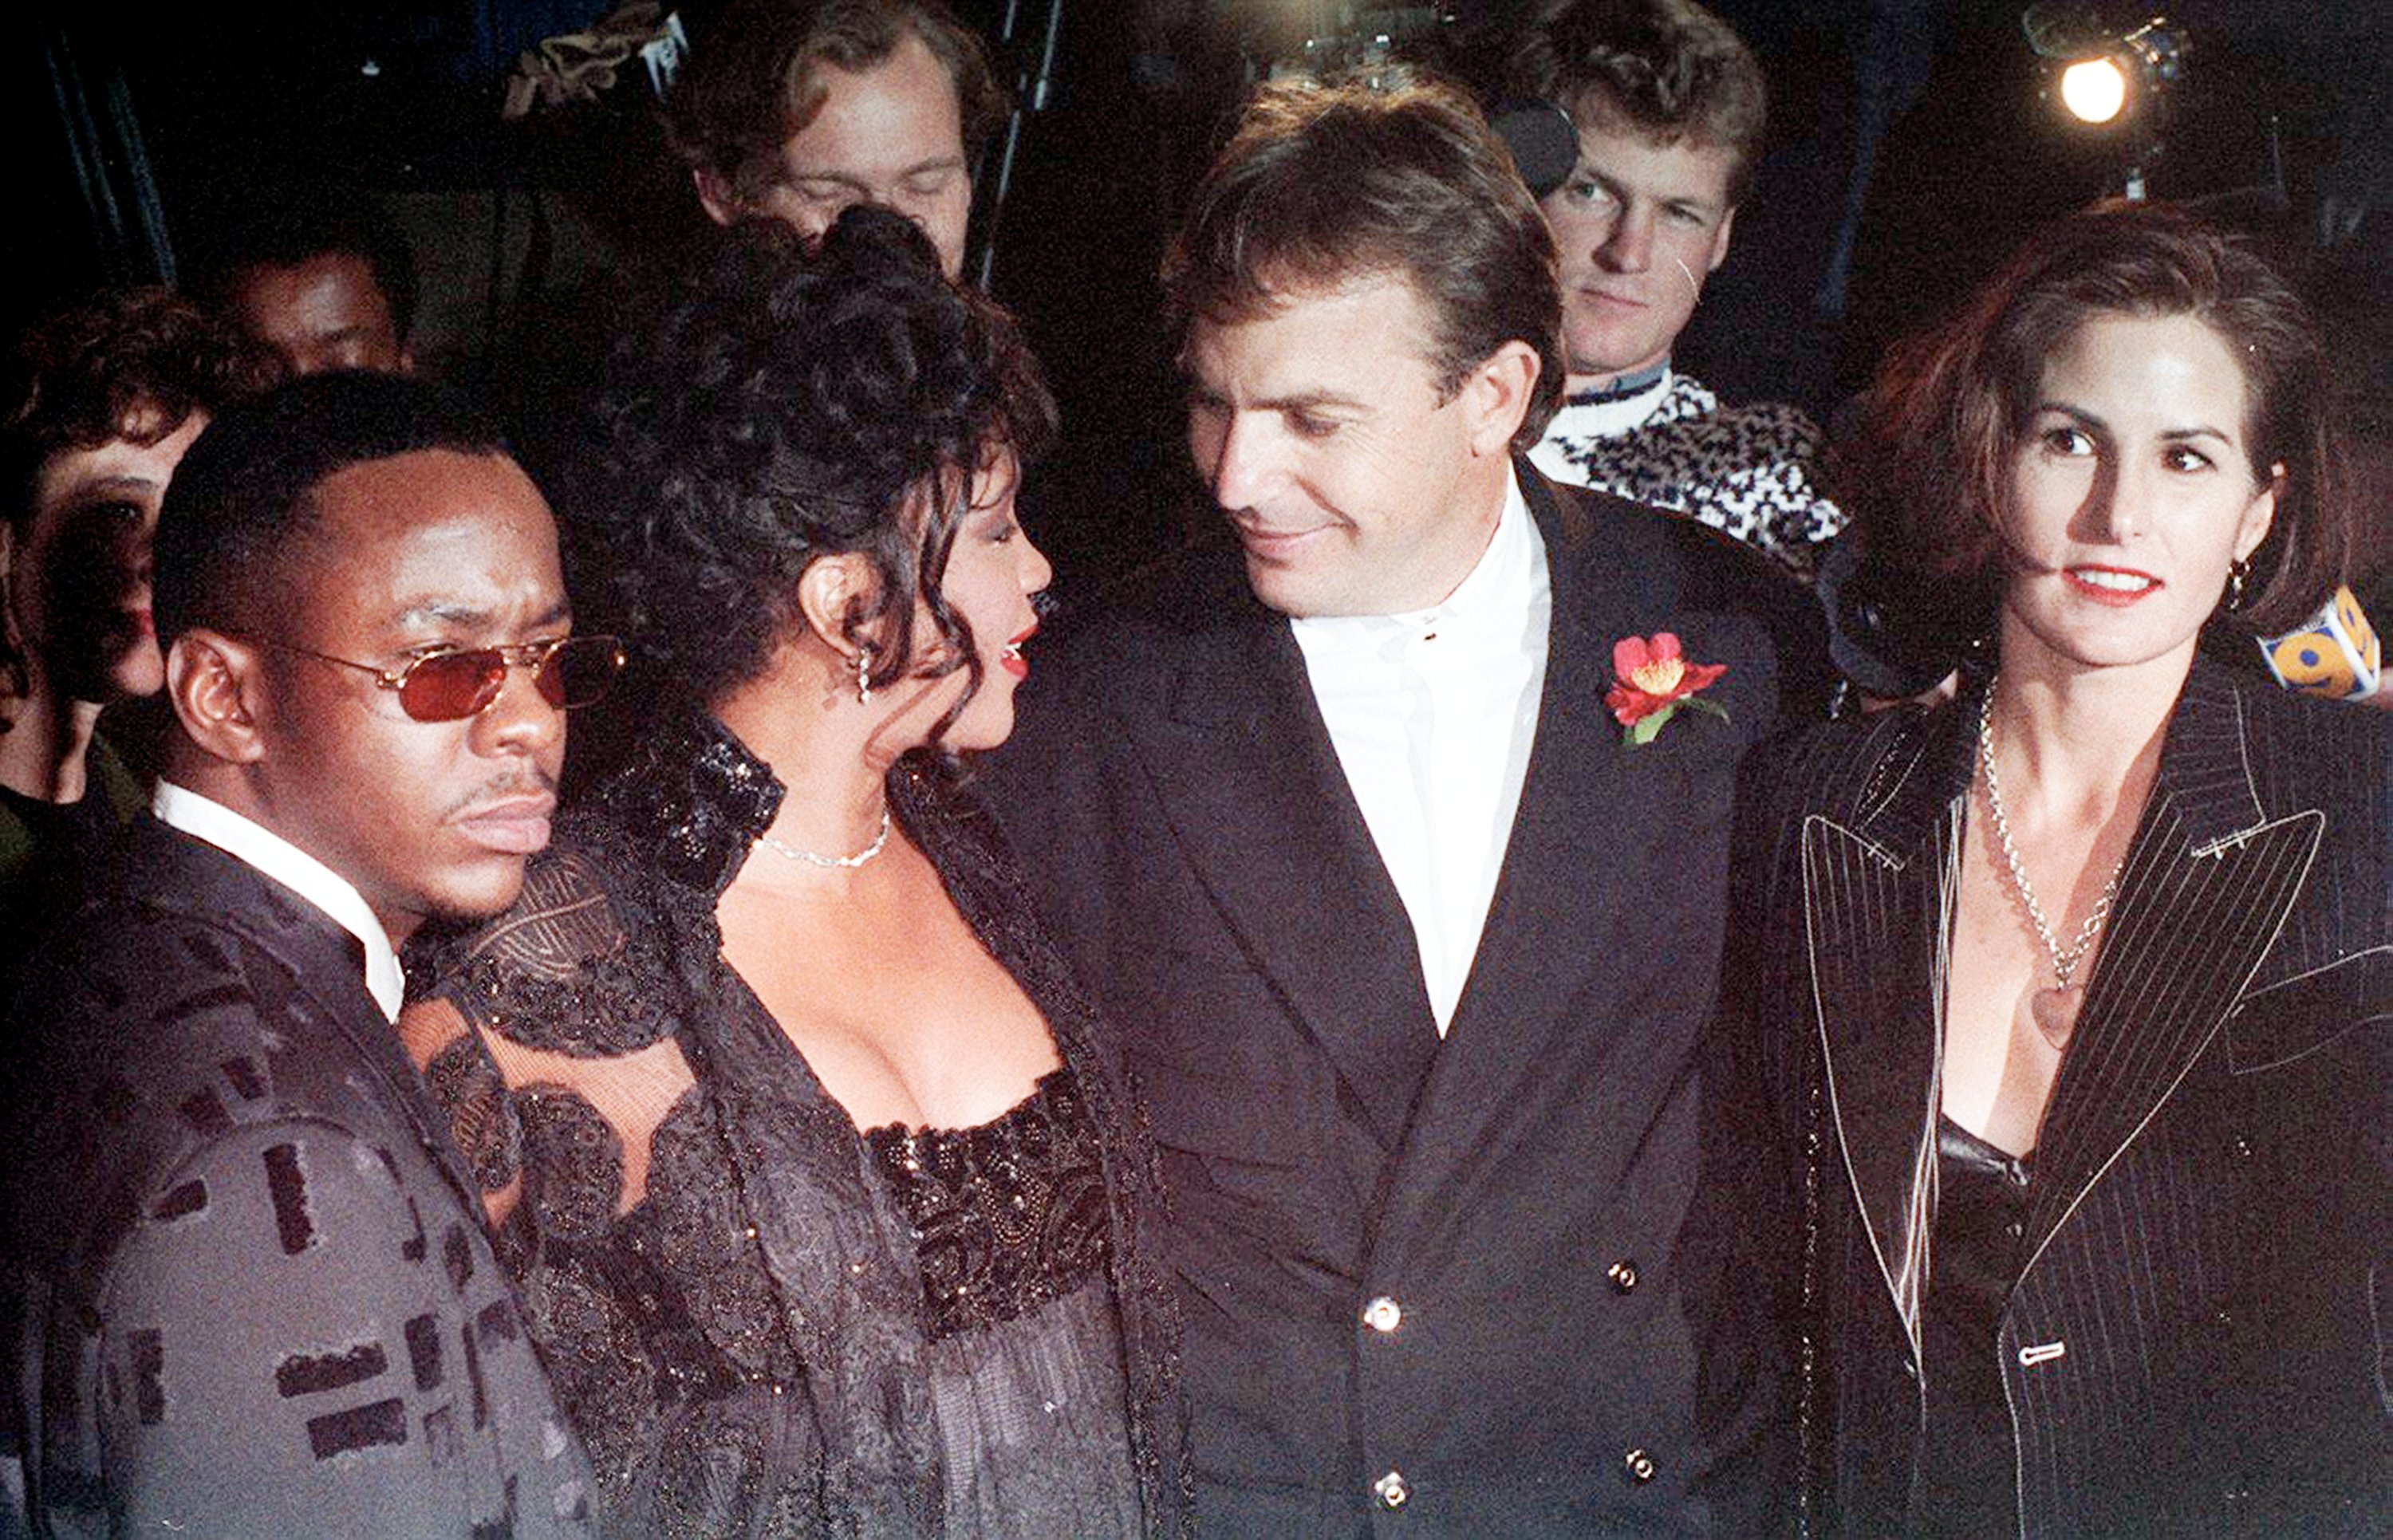 Singers Bobby Brown and Whitney Houston, and actor Kevin Costner with his wife Cindy Costner attend 'The Bodyguard' Hollywood premiere at Mann's Chinese Theatre in Hollywood, California, U.S., Nov. 23, 1992.  (Getty Images)